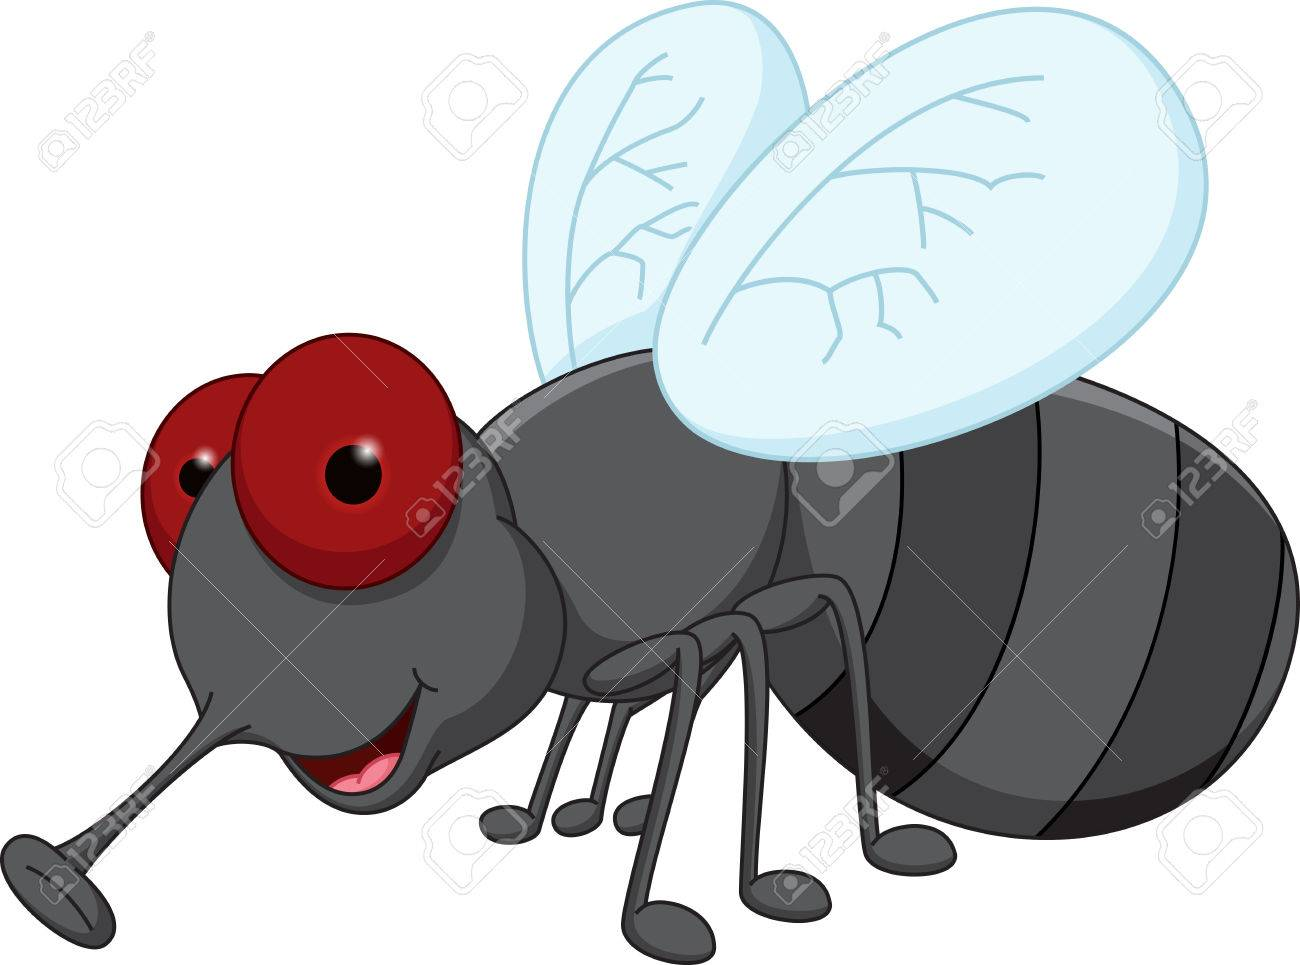 Flies clipart nuisance. Collection of free